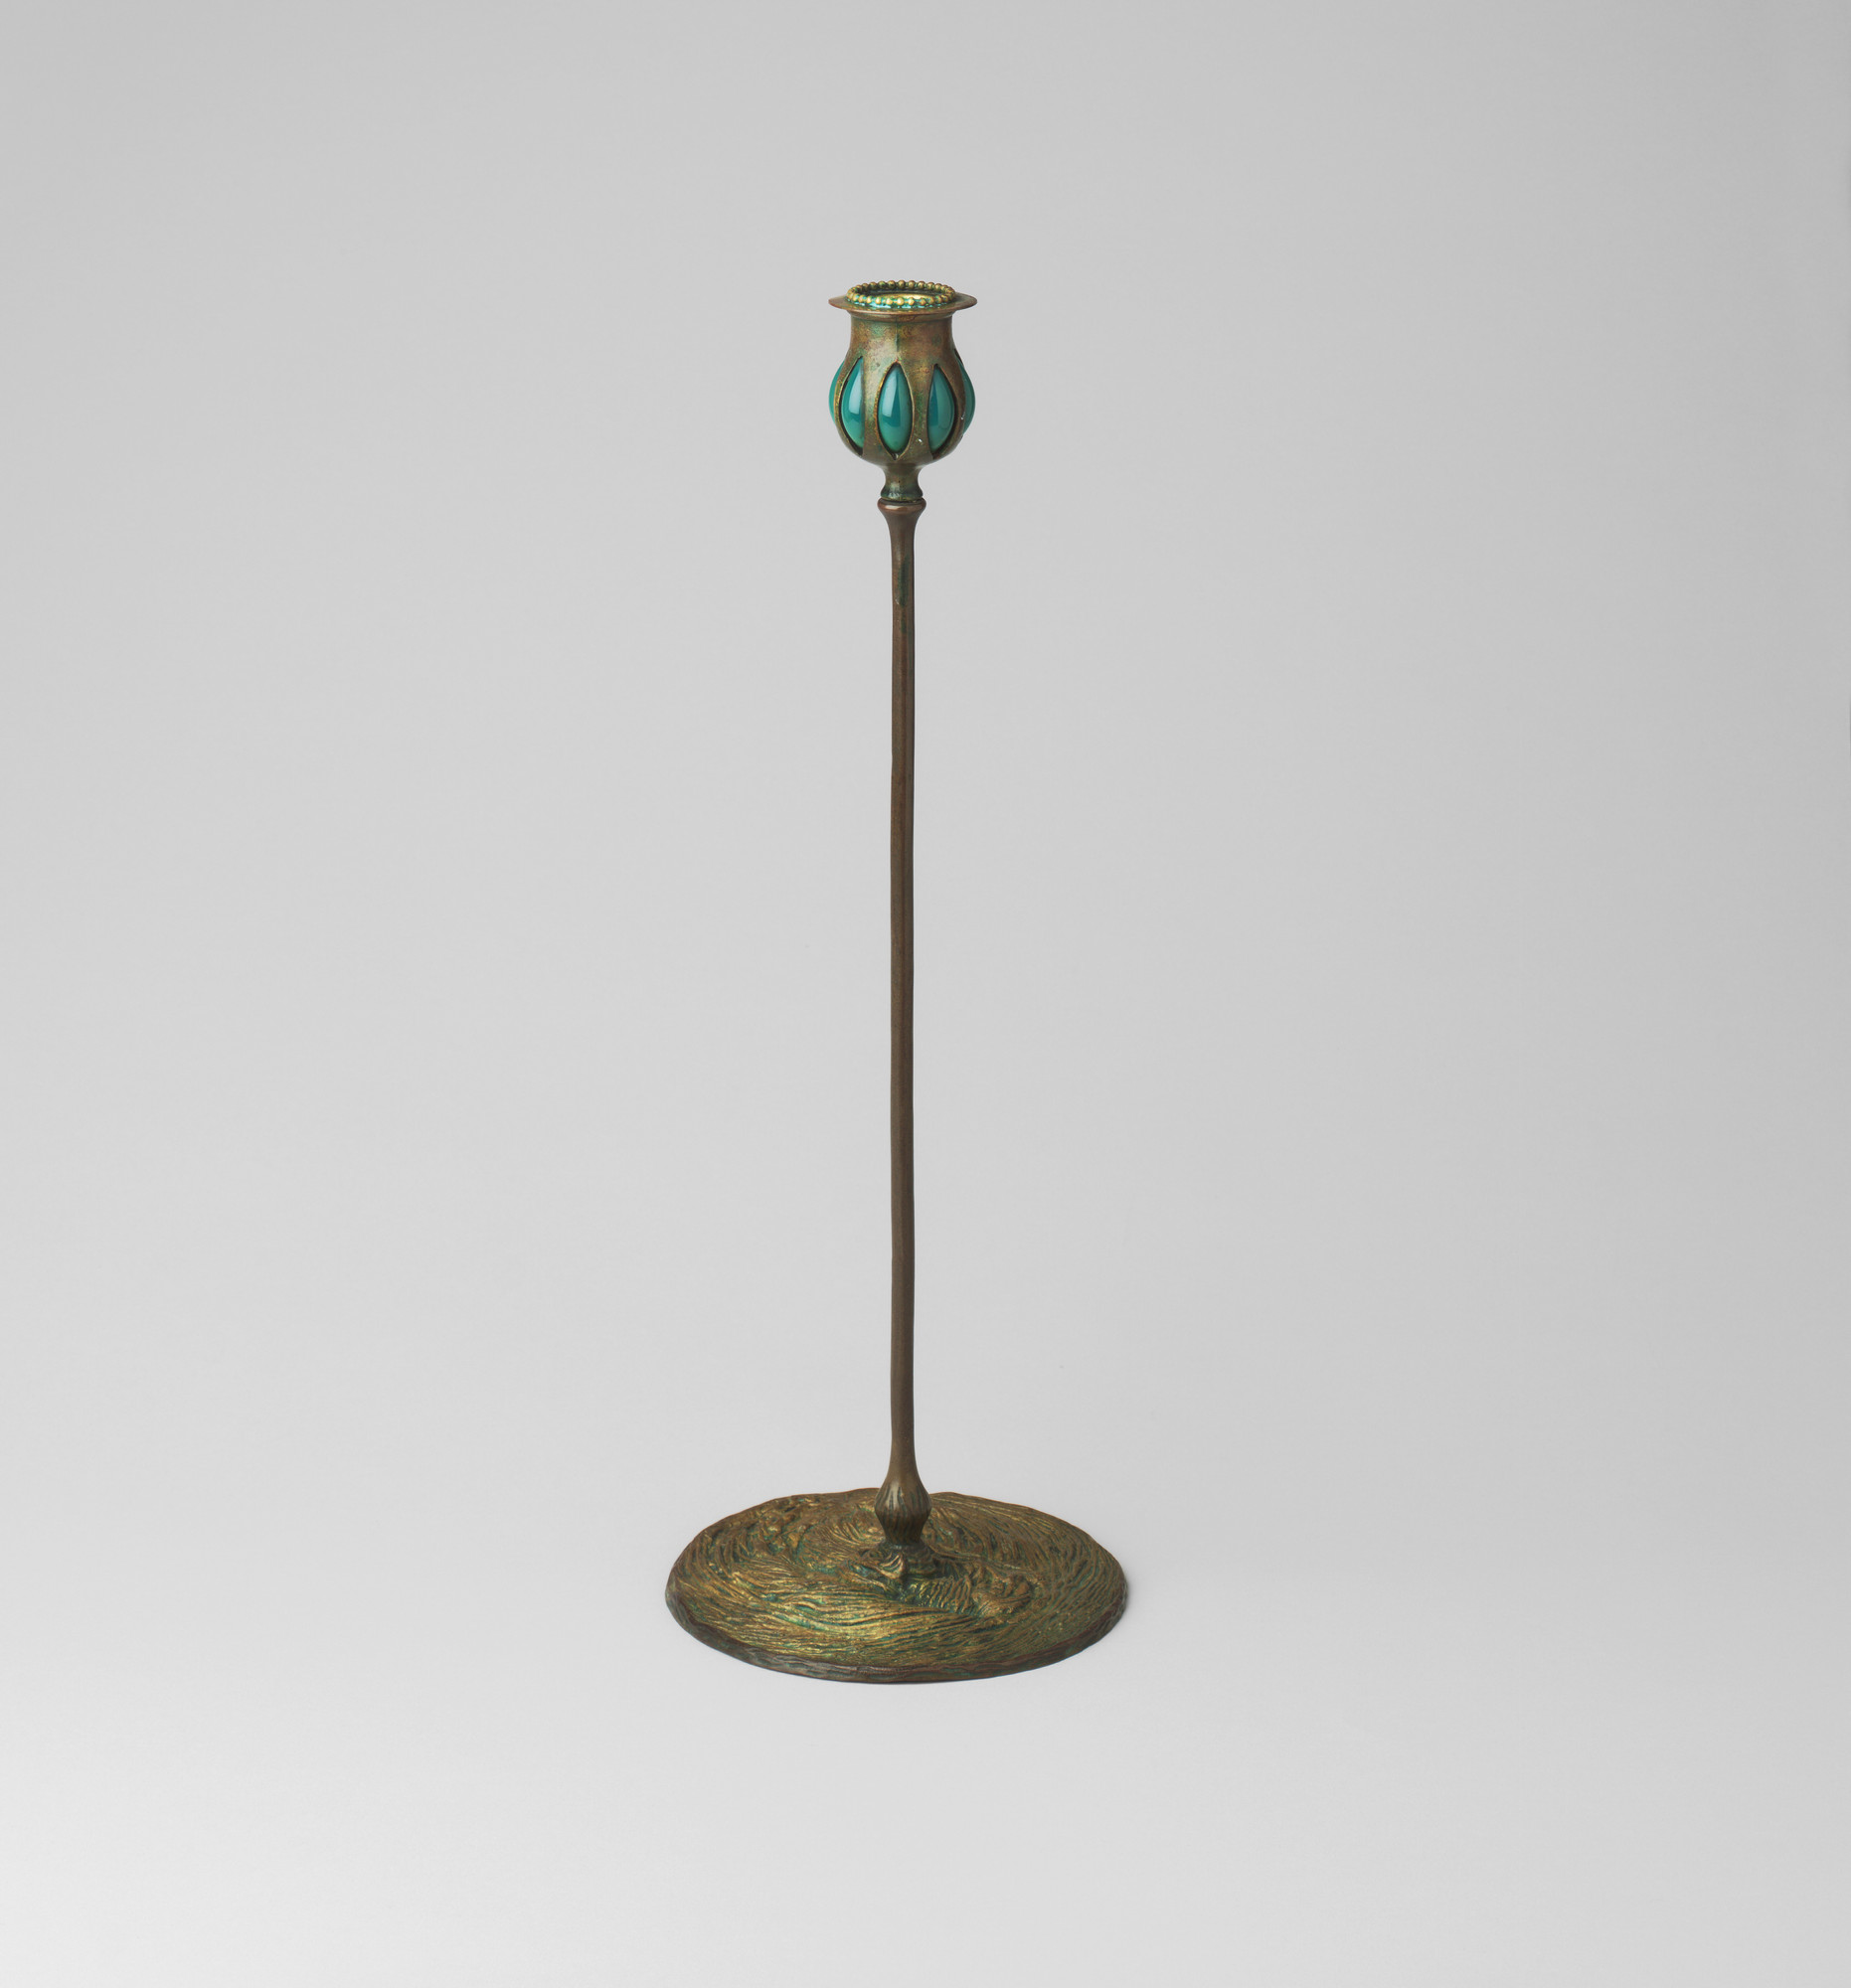 Louis Comfort Tiffany. Candlestick. c. 1900